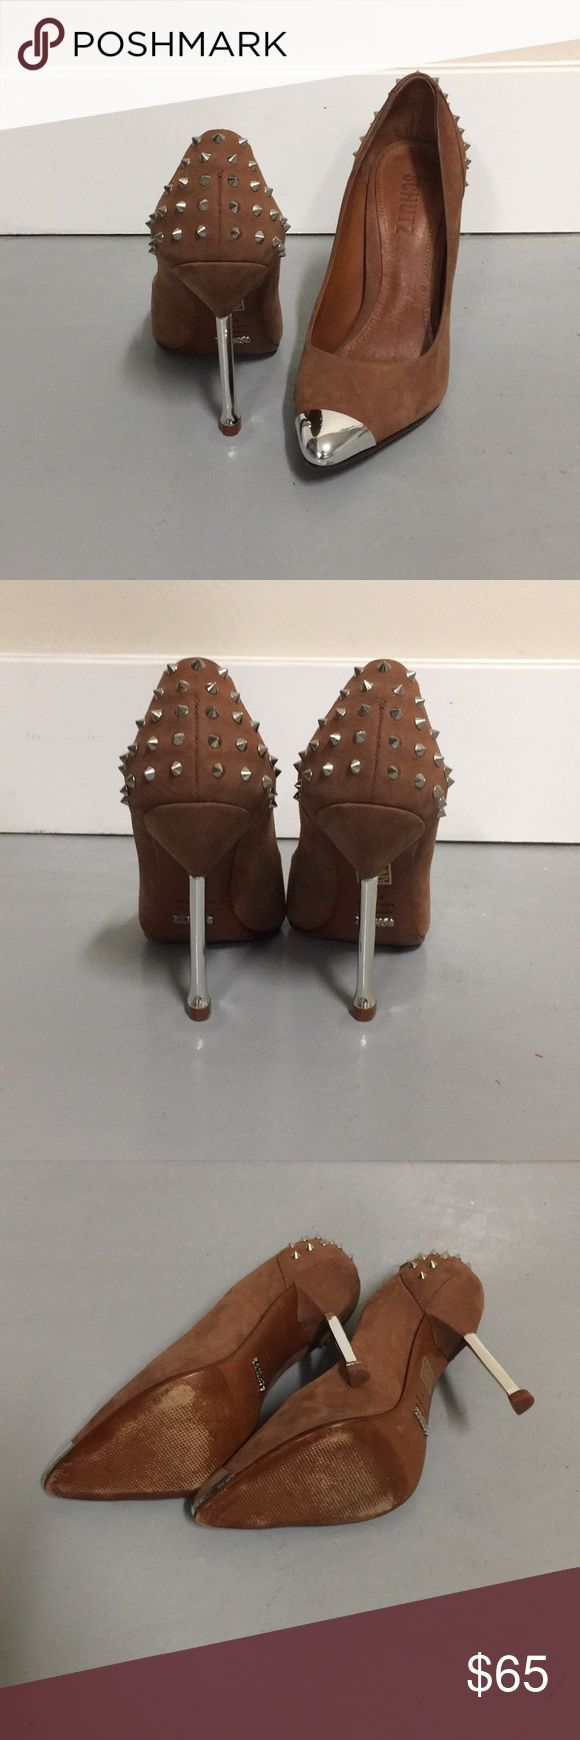 Schutz pumps Brown suede pumps with silver metal toe, silver metal spikes on heels and silver metal heel. They're size 6.5 but in my opinion they fit more like a 6. I'm a 6.5 and they're a little tight. SCHUTZ Shoes Heels